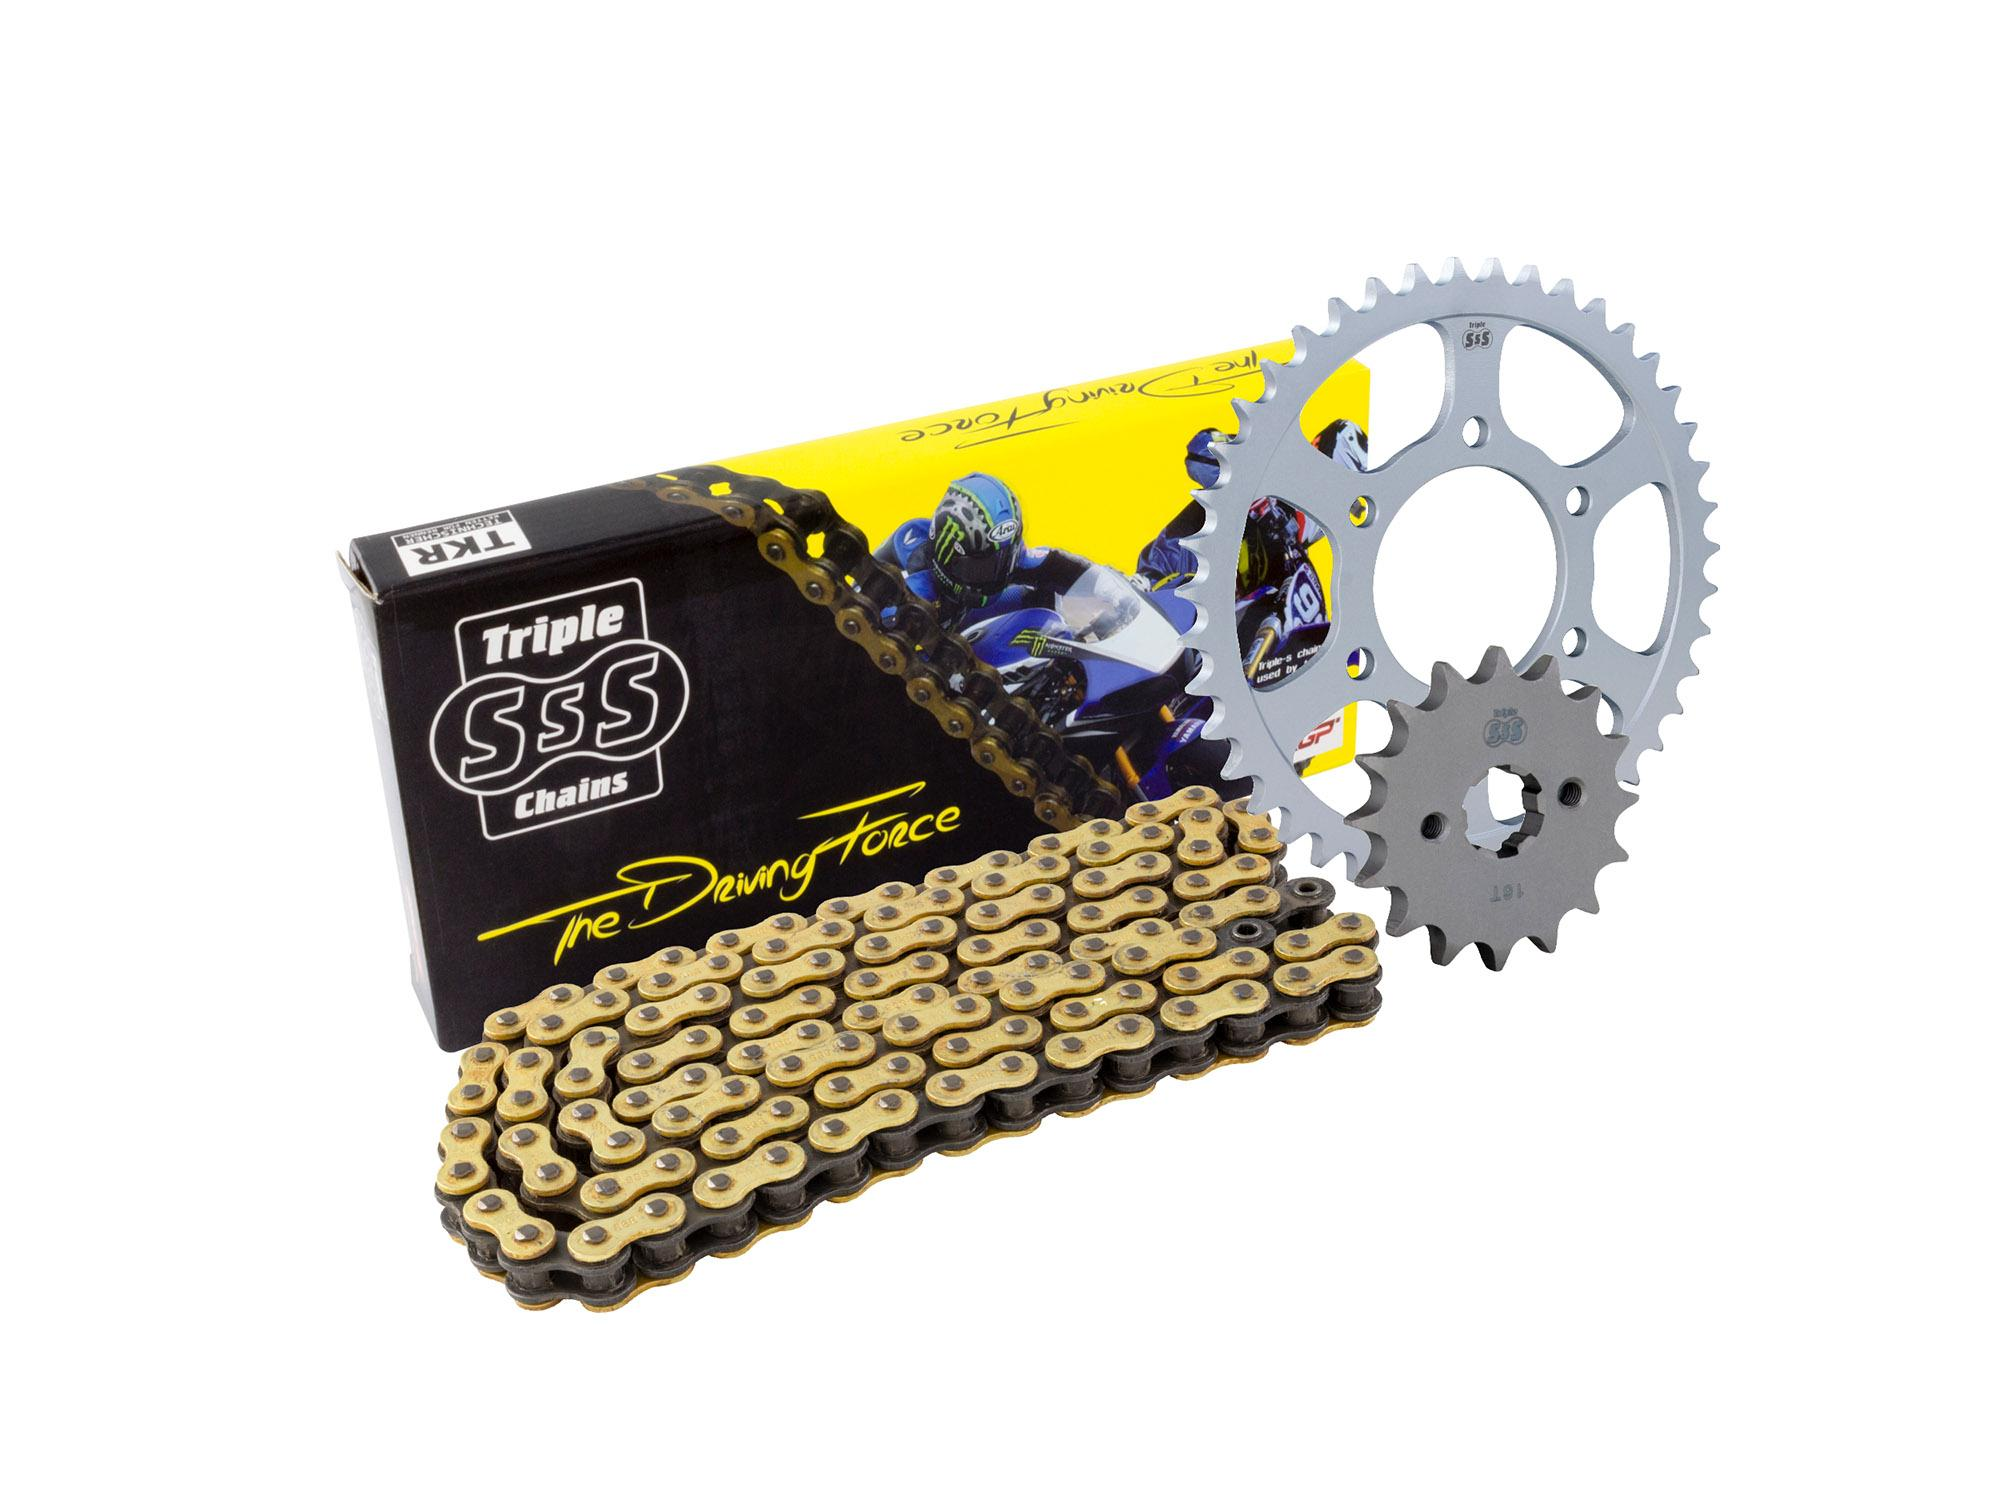 Yamaha YZF750 SP 93-97 Chain & Sprocket Kit: 16T Front, 39T Rear, HD O-Ring Gold Chain 530H 104 Link